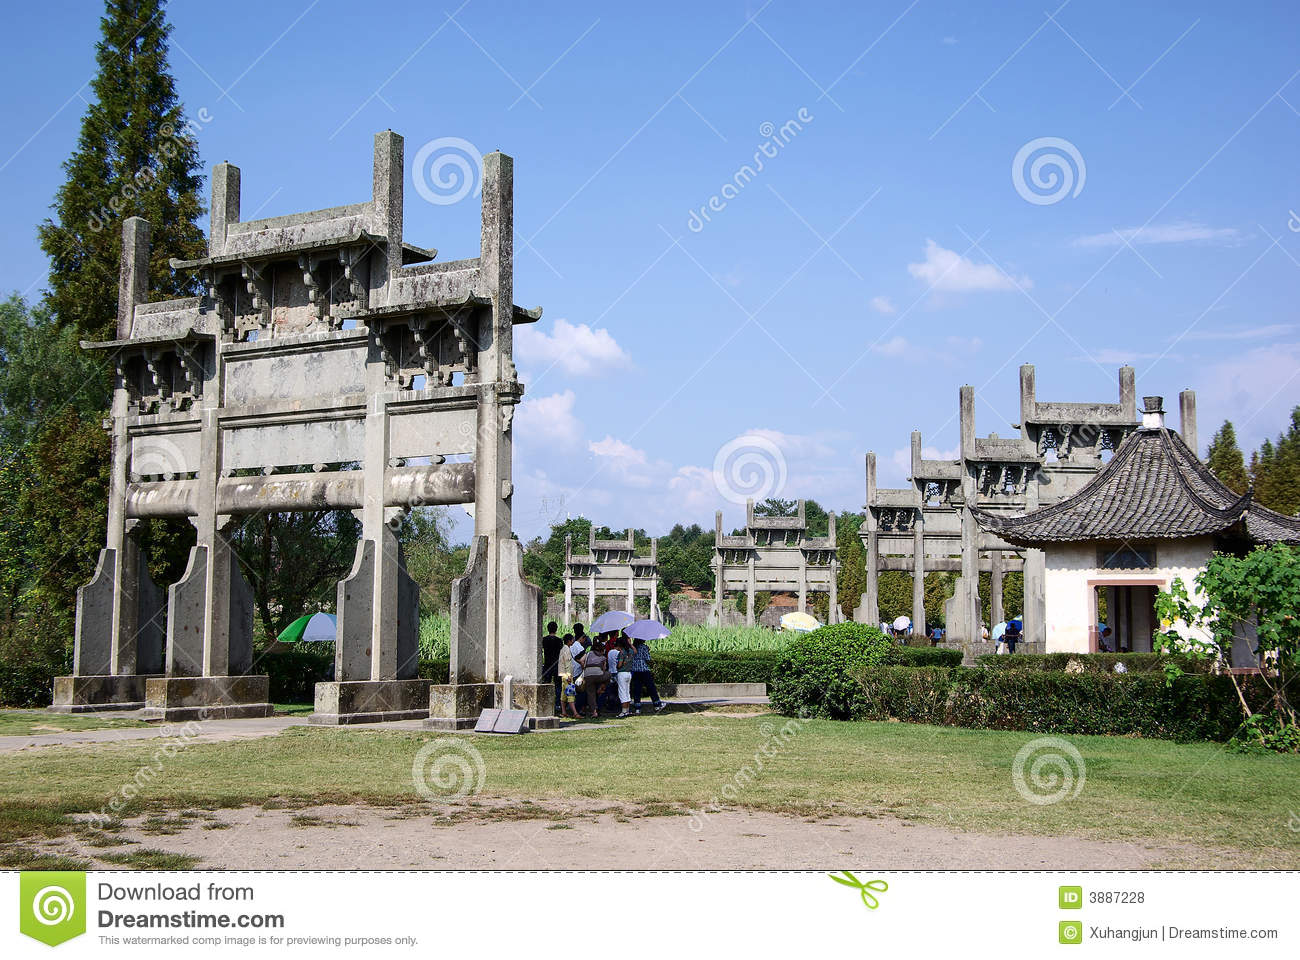 Huizhou China  city photo : China Huizhou Paifang Royalty Free Stock Photos Image: 3887228